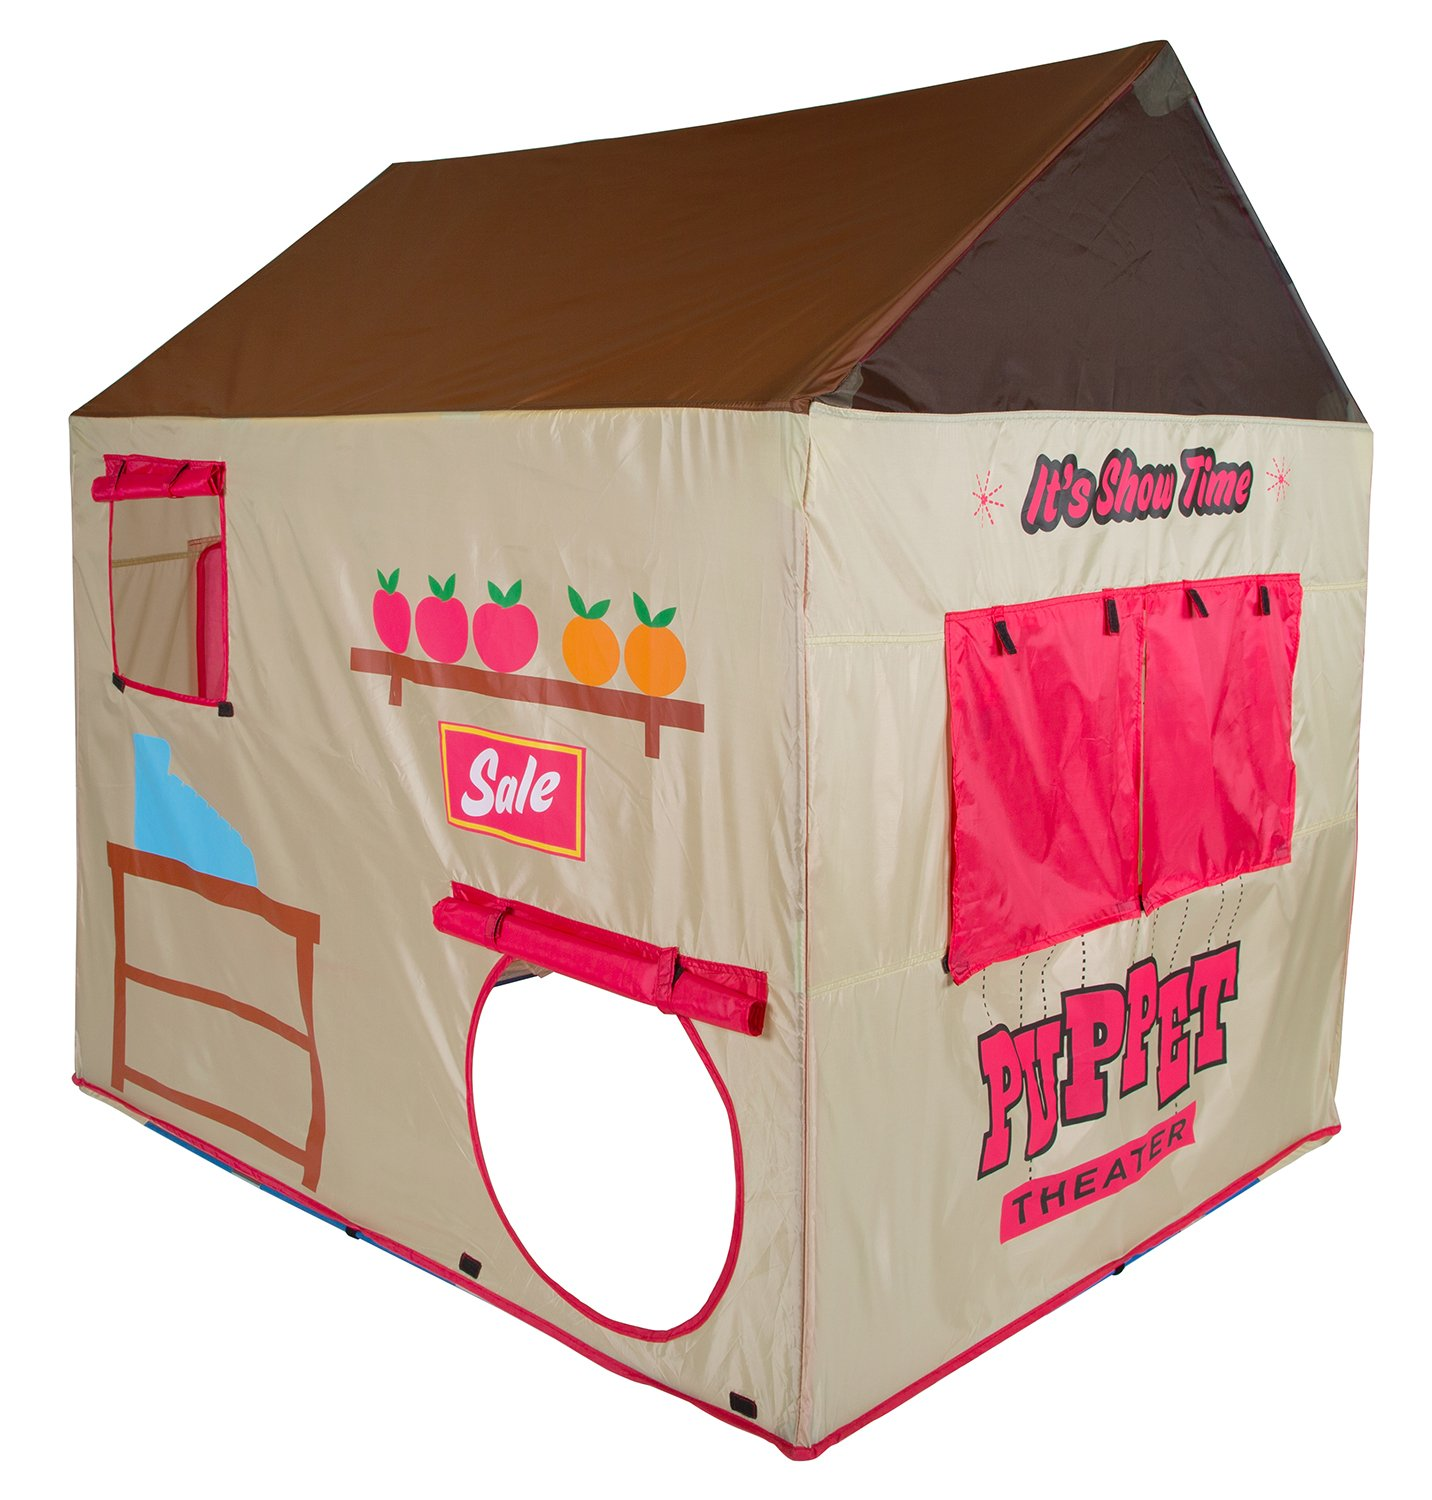 Amazon.com Pacific Play Tents Kids Grocery Store and Puppet Theater House Tent Playhouse - 58  x 48  x 58  Toys u0026 Games  sc 1 st  Amazon.com & Amazon.com: Pacific Play Tents Kids Grocery Store and Puppet ...